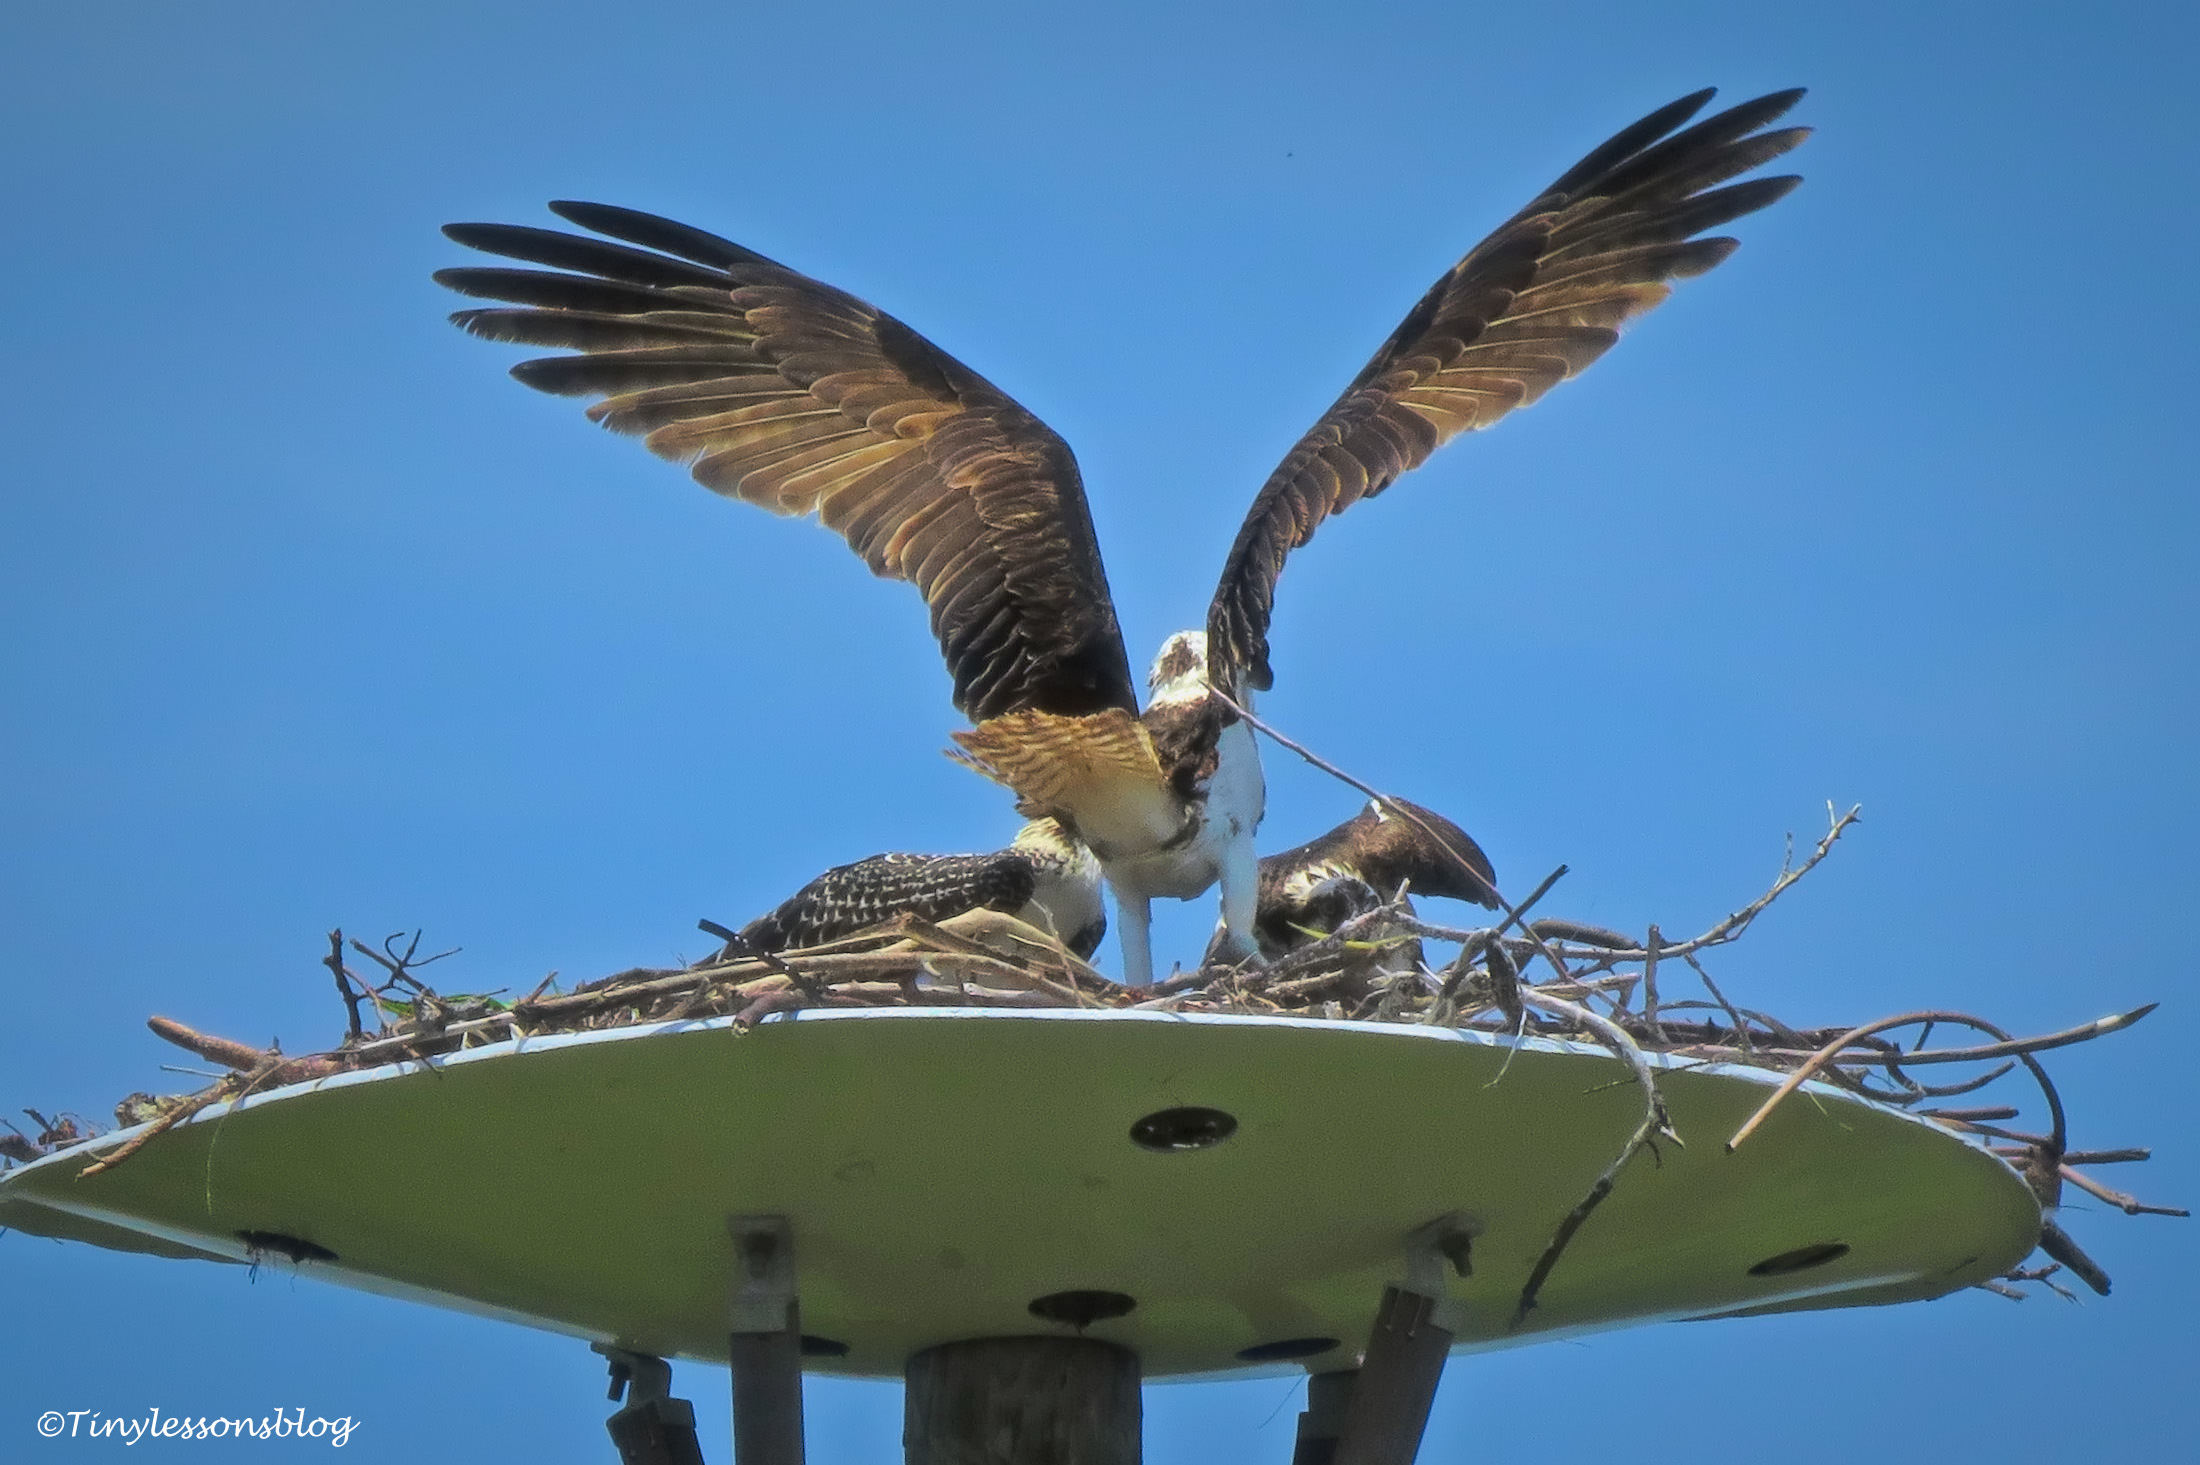 Papa Osprey in the nest ud161